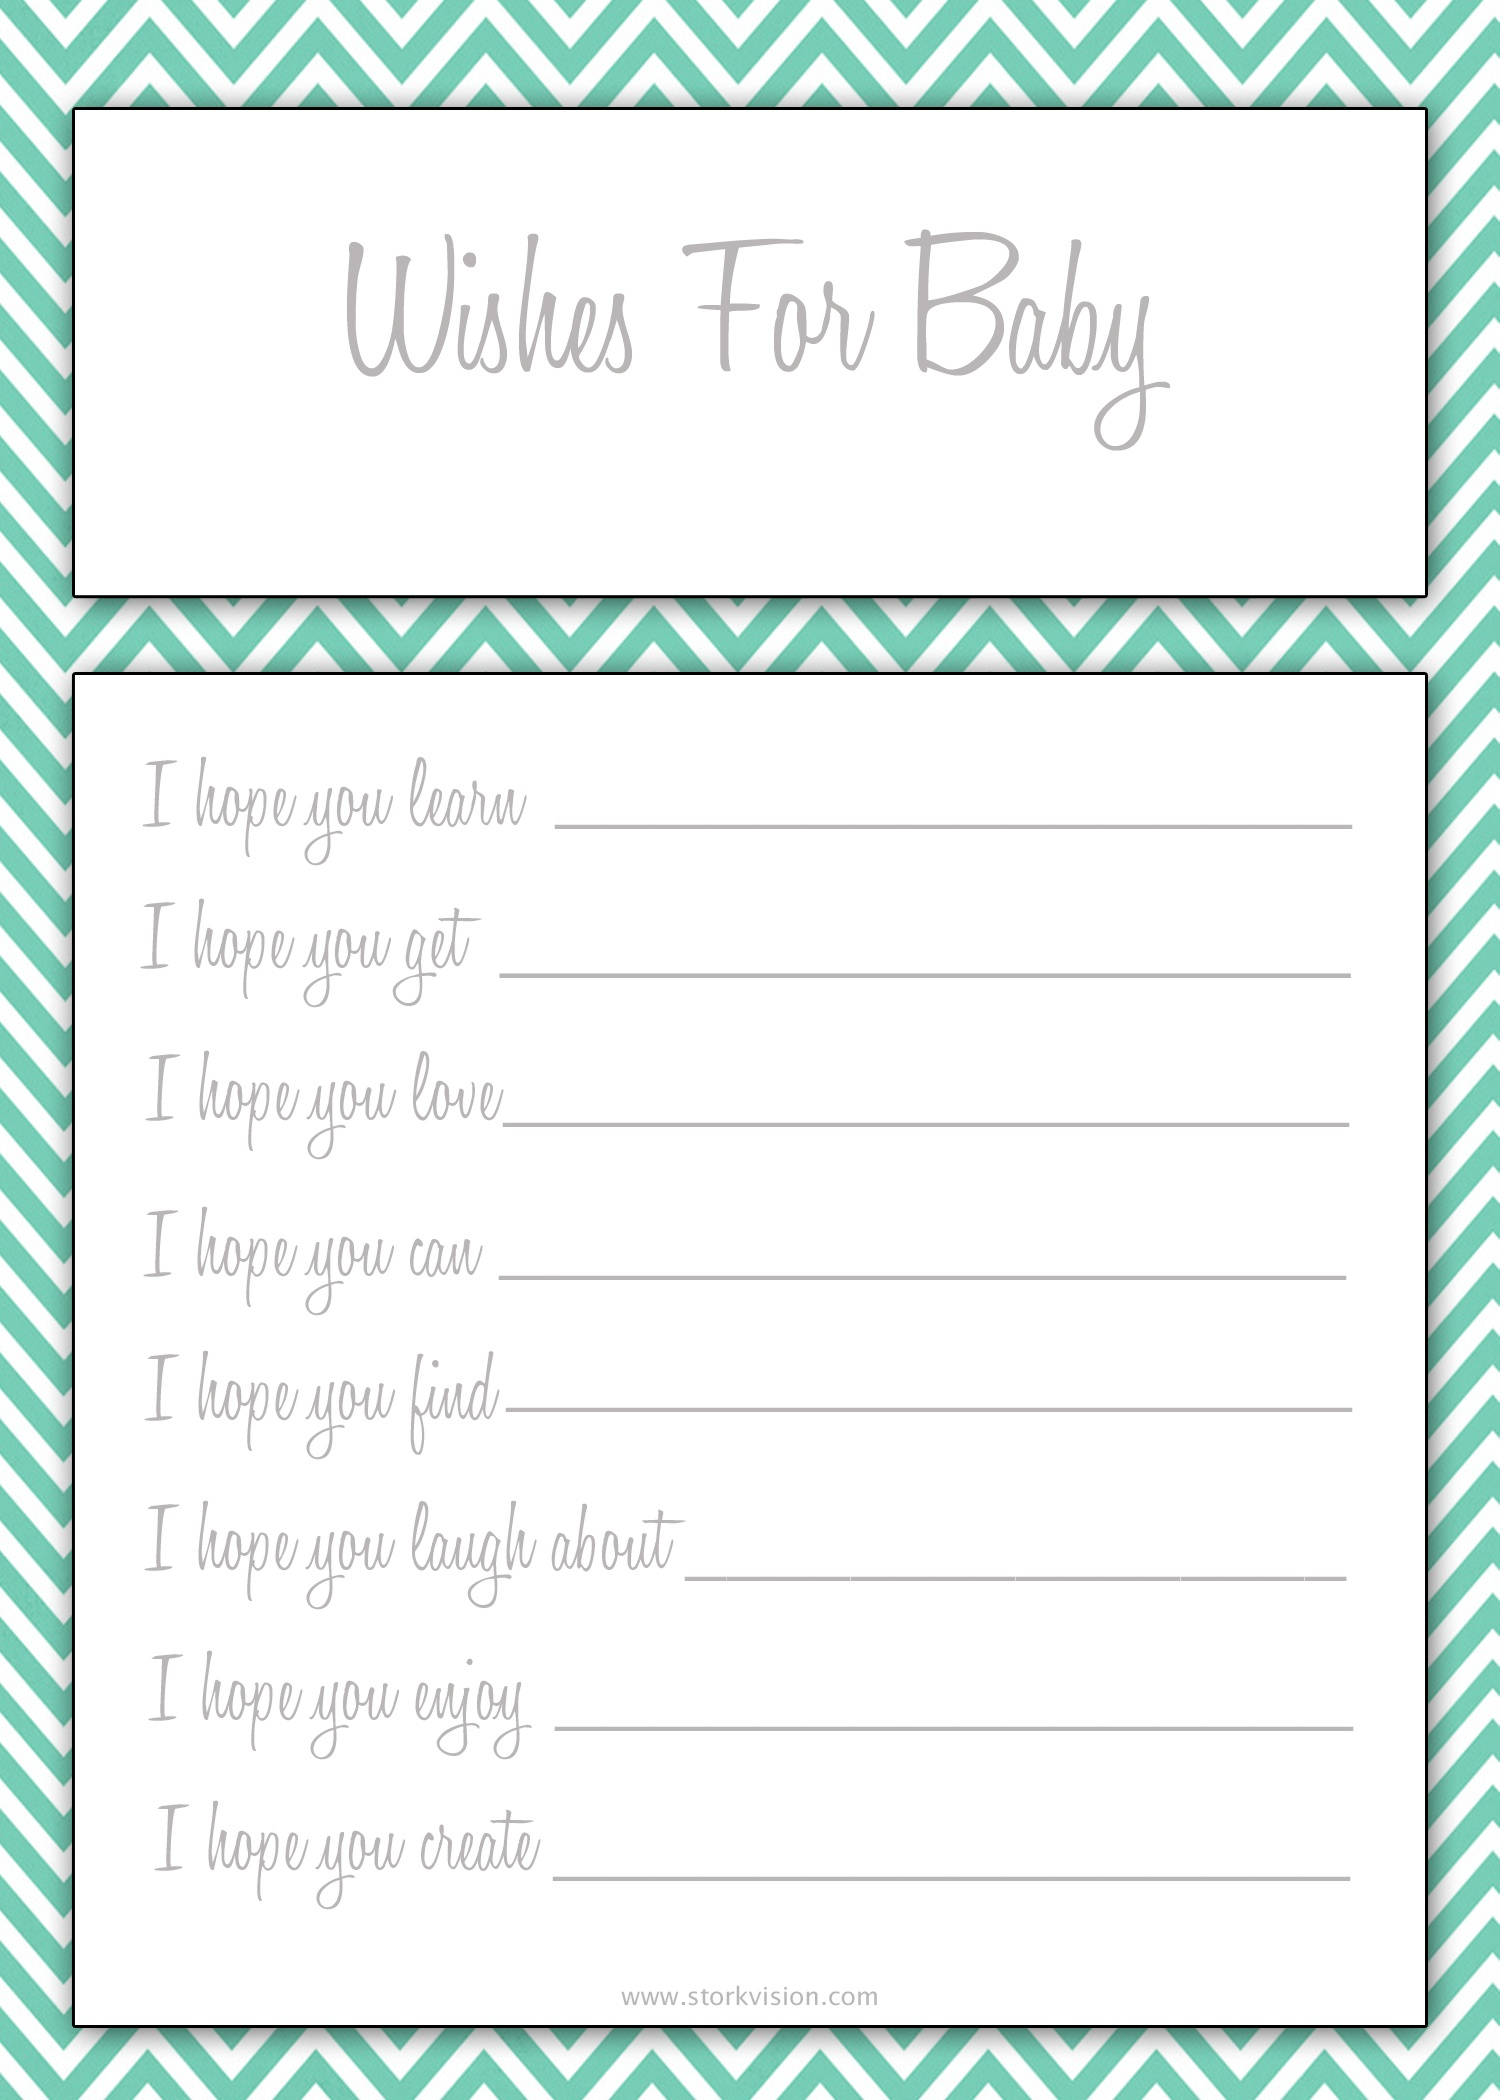 Photo : Free Baby Shower Printable Image - Free Printable Baby Shower Decorations For A Boy